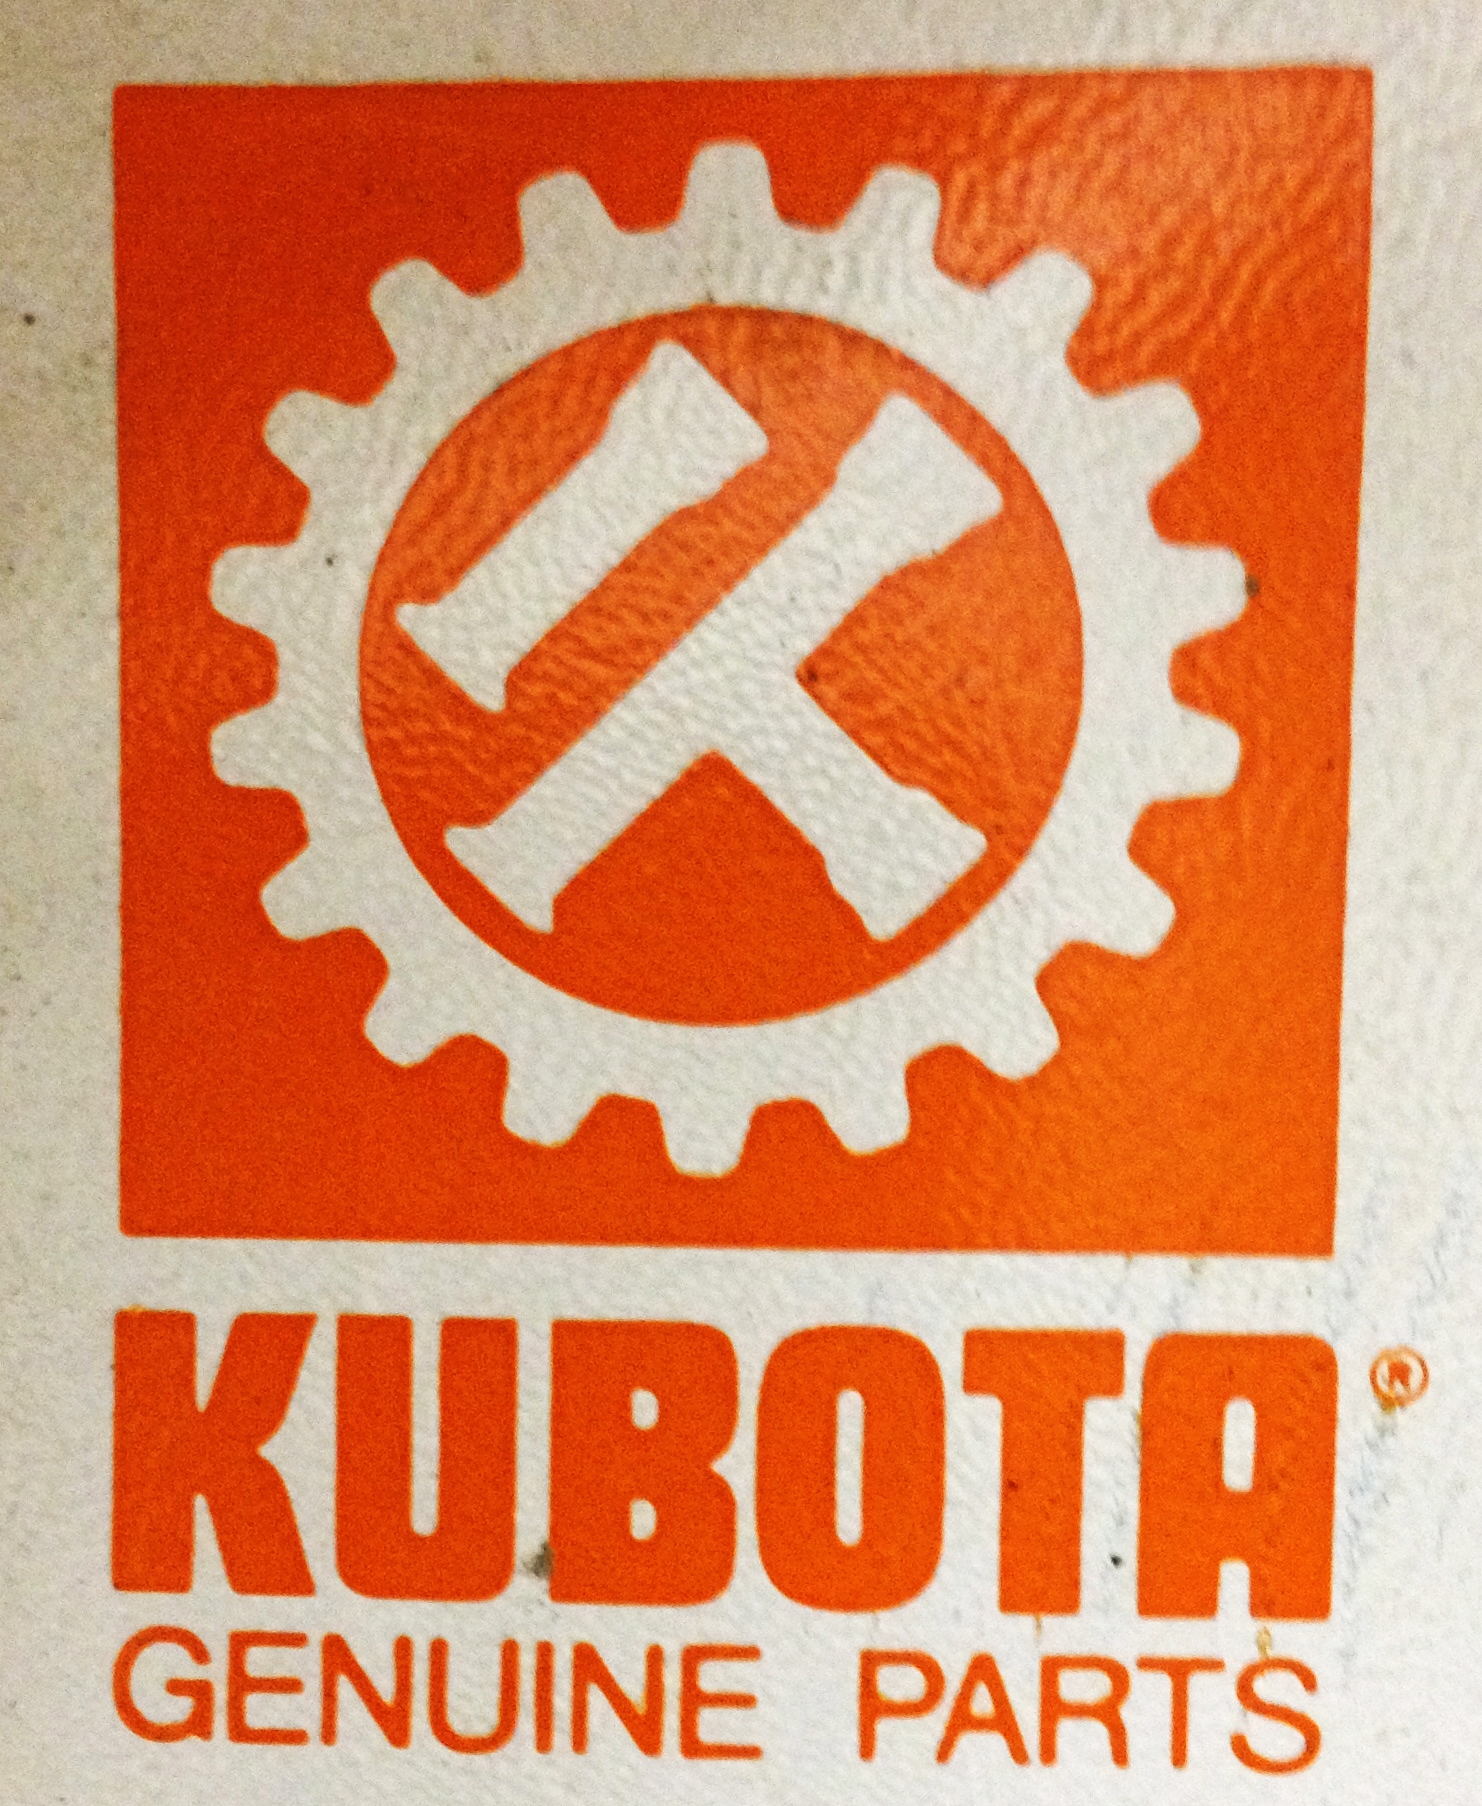 in 1978 after moving to the larger location Humphreys' picked up the Kubota Tractor line.